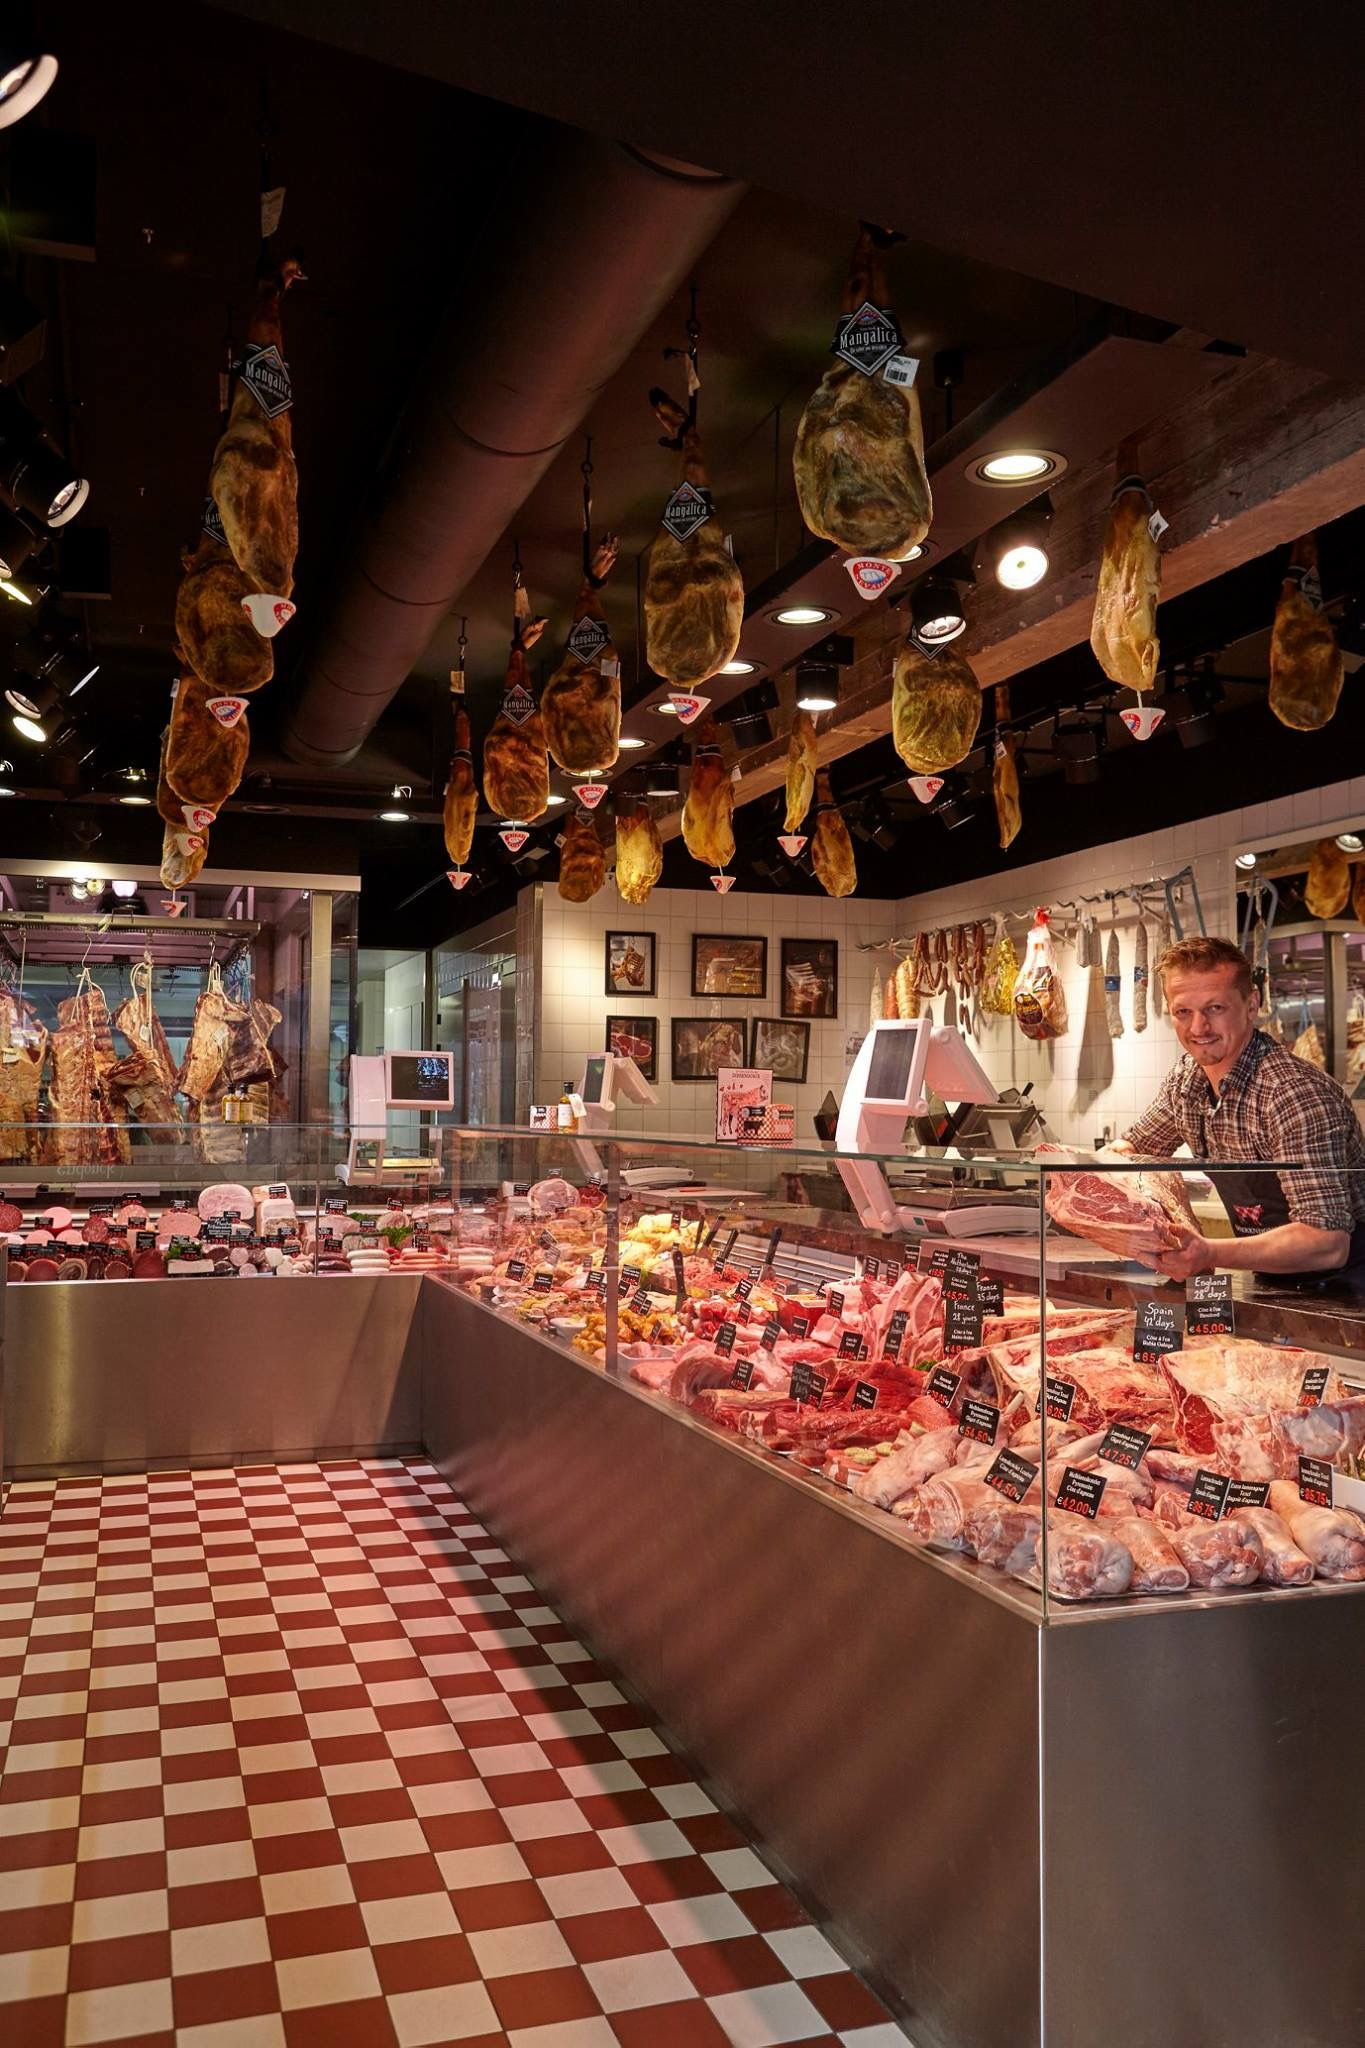 Bones Blades A Sustainably Minded Butcher Shop For Conscious